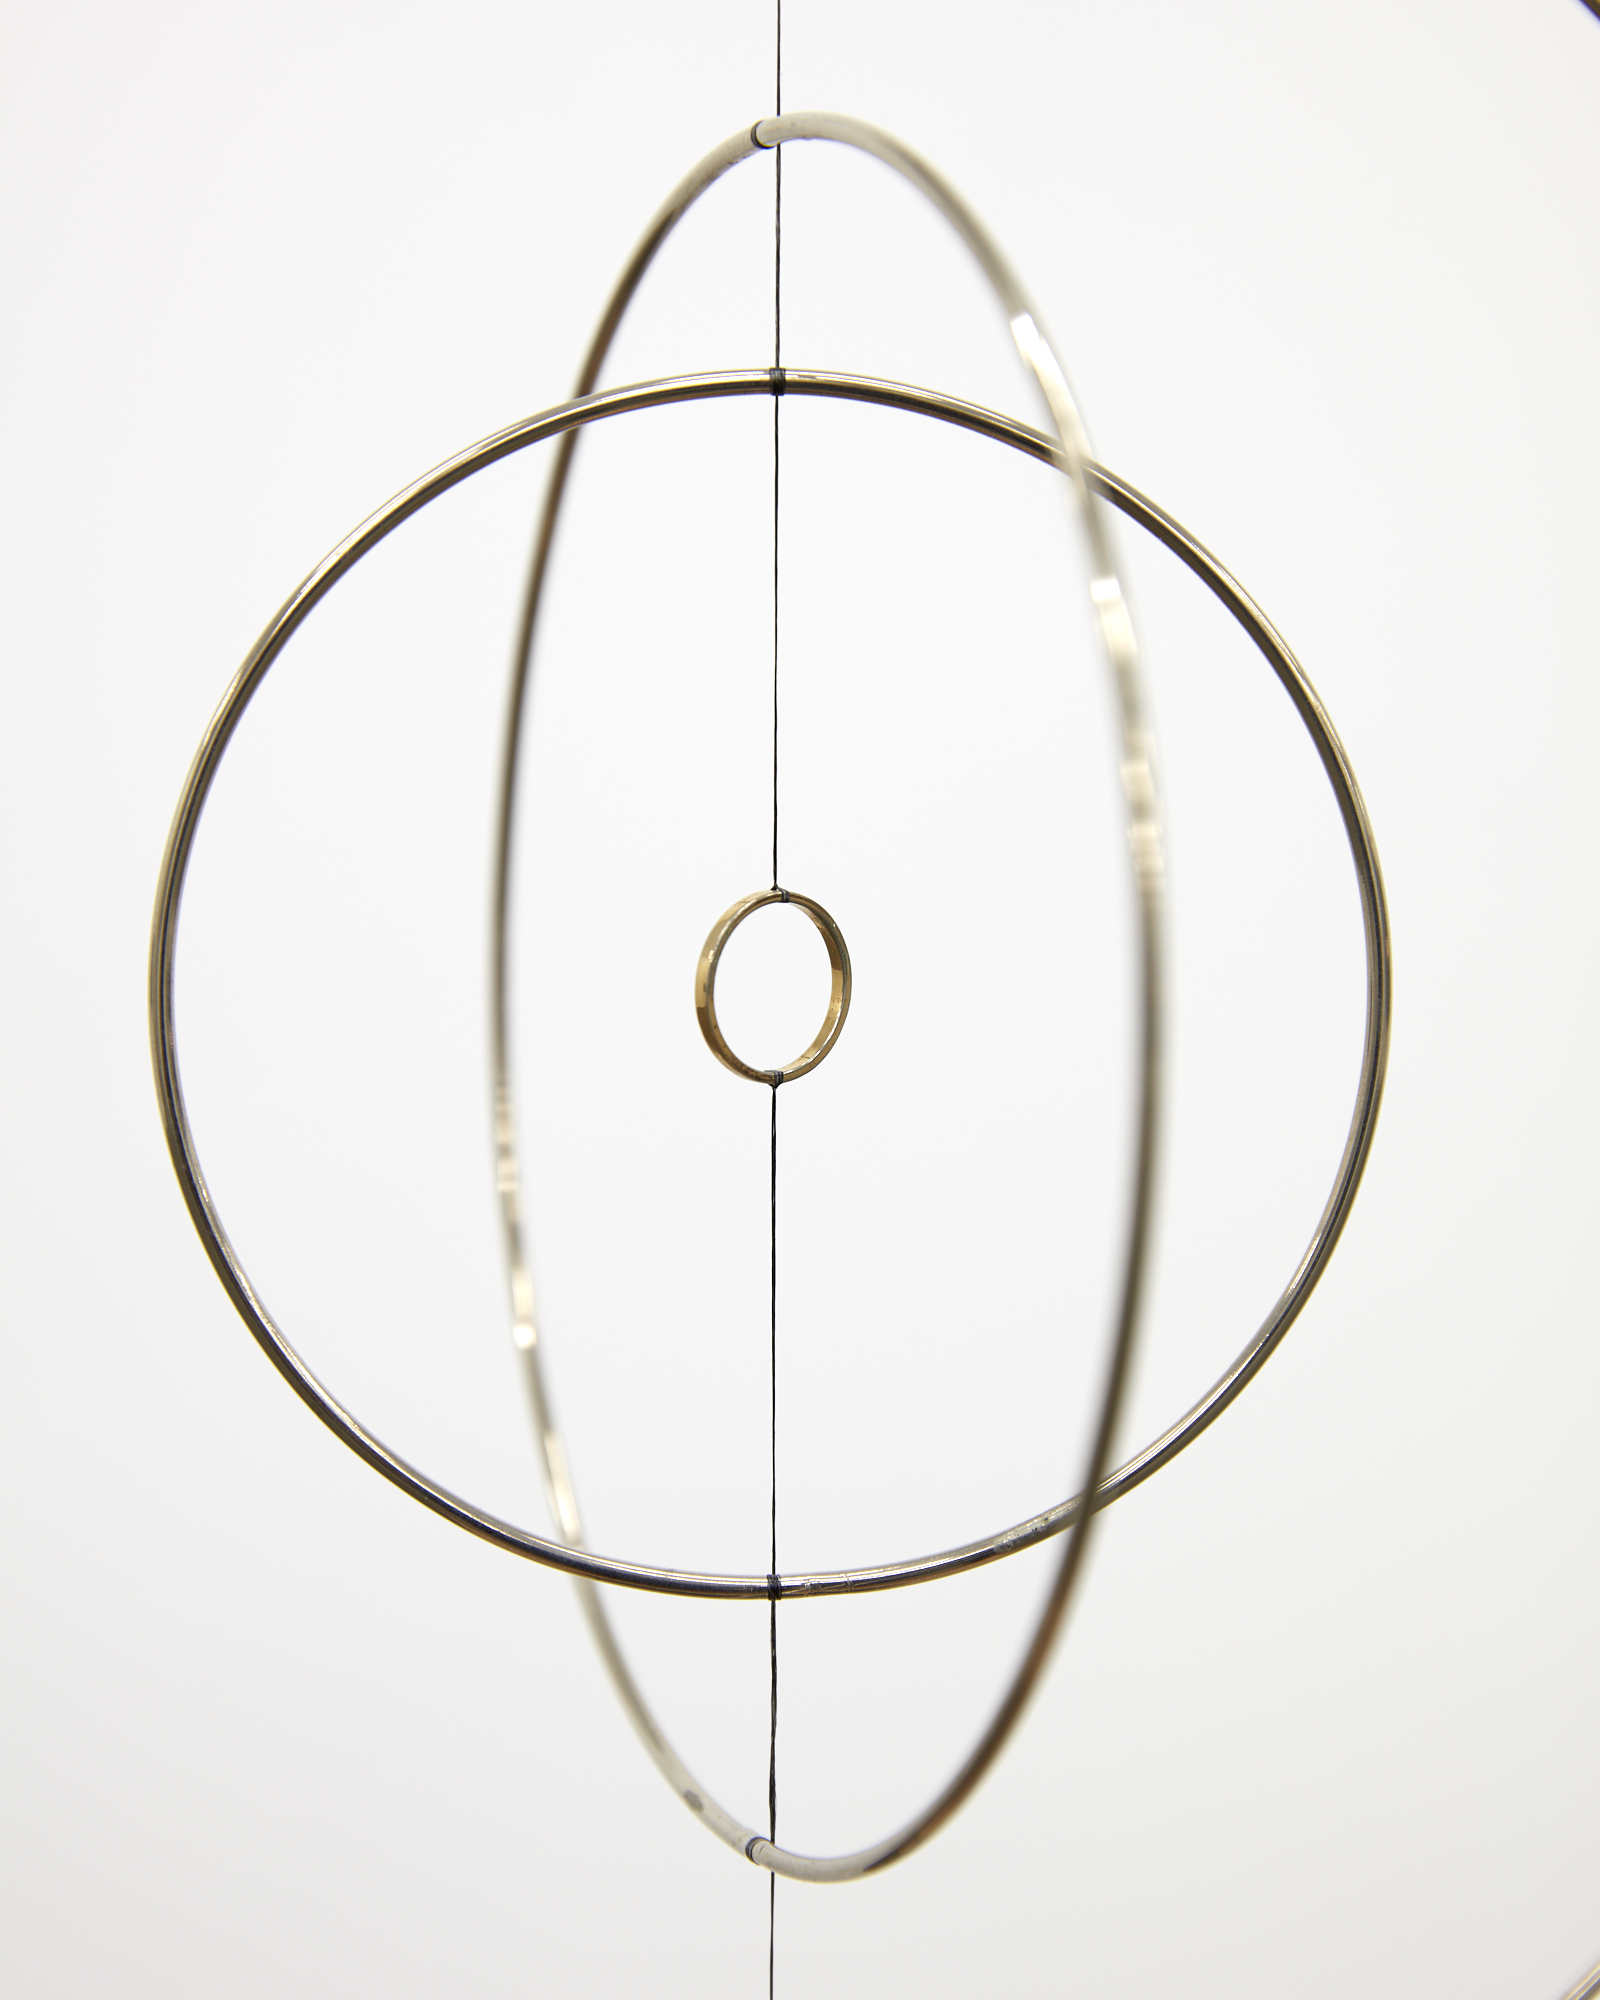 Len Lye,  Roundhead  (detail) ,  1961 (authorized reconstruction), steel, nylon, gold plated copper with motor and altered music box, 675 x 255 mm disameter.